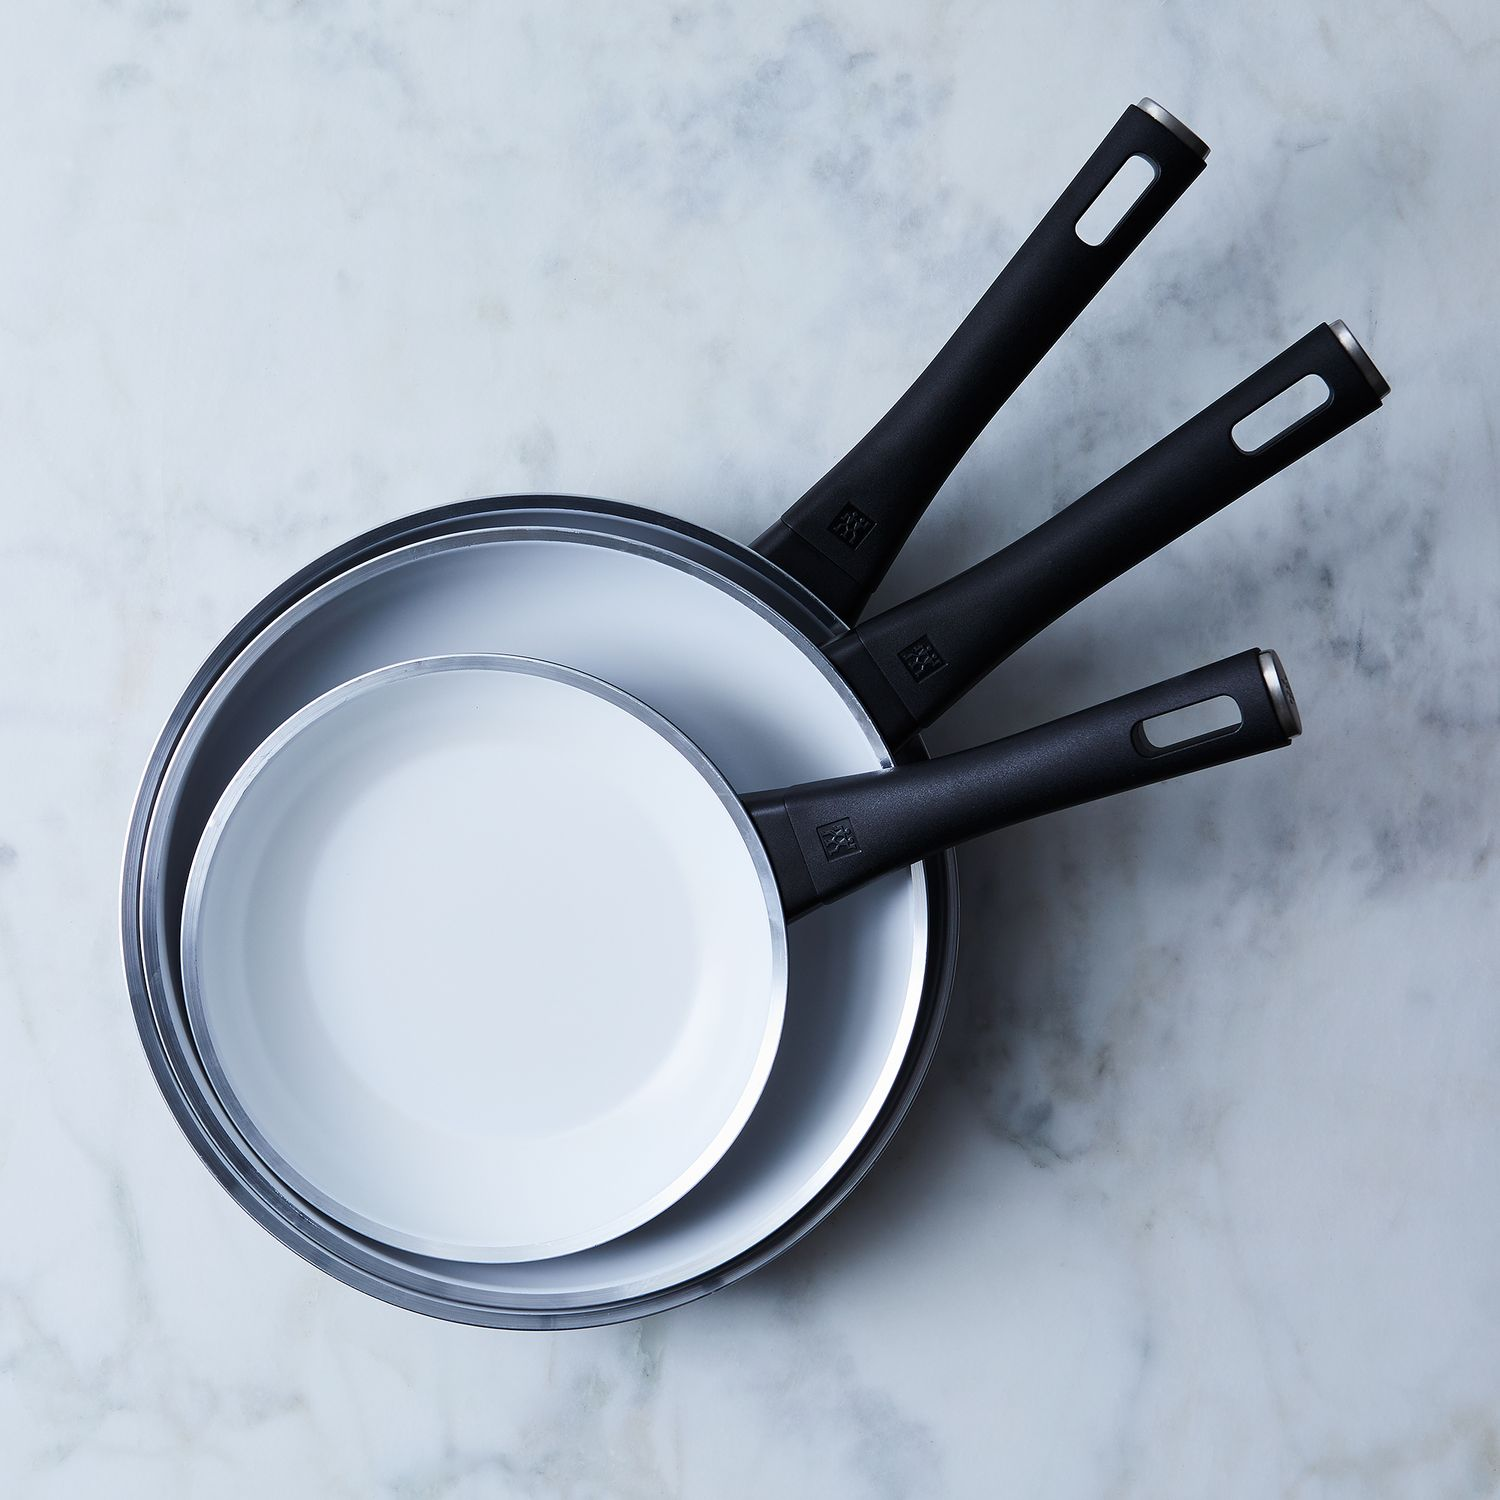 Zwilling Carrara Nonstick Ceramic Fry Pan On Food52